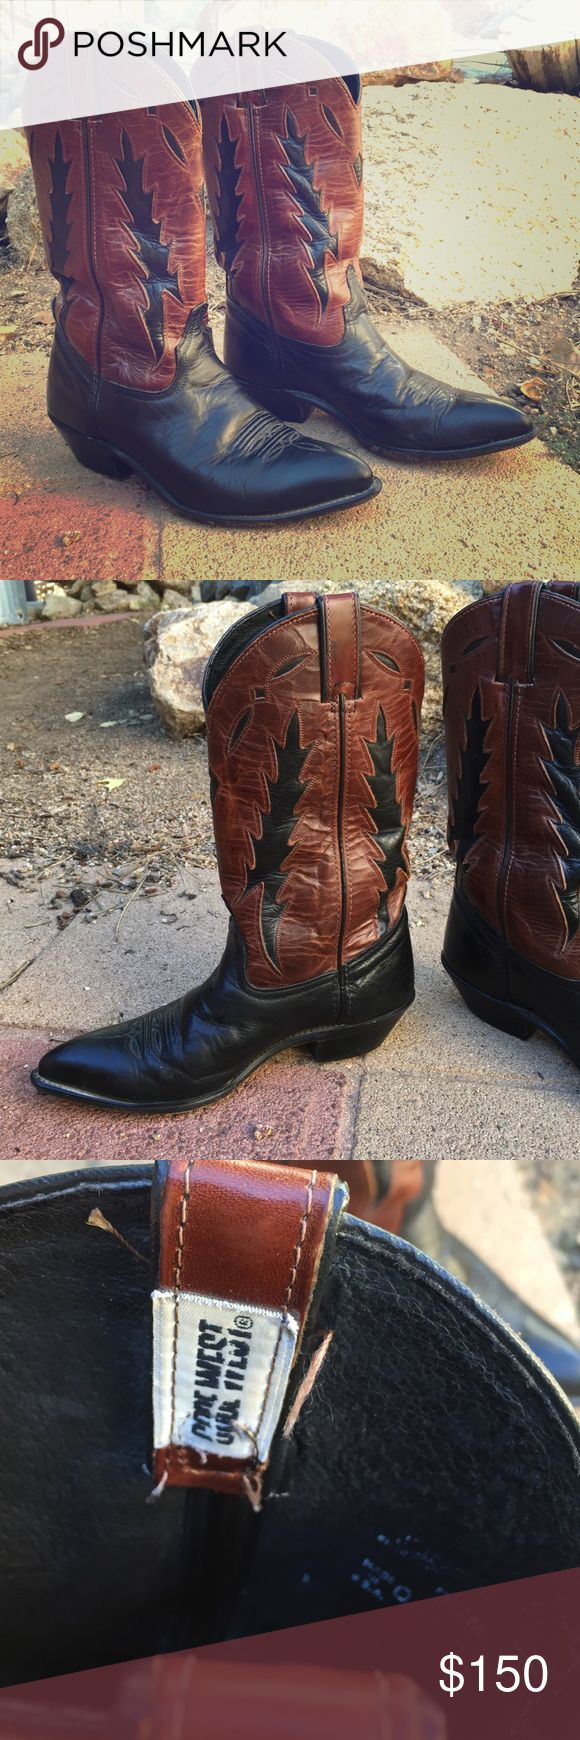 Code West Cowboy Boots Vintage western boots 😍 black leather with brown leather design • size 7.5 women • cowboy boots • Code West #codewestboots #cowboyboots #boots #vintagewesternboots #morningmonologue #sexyboots Code West  Shoes